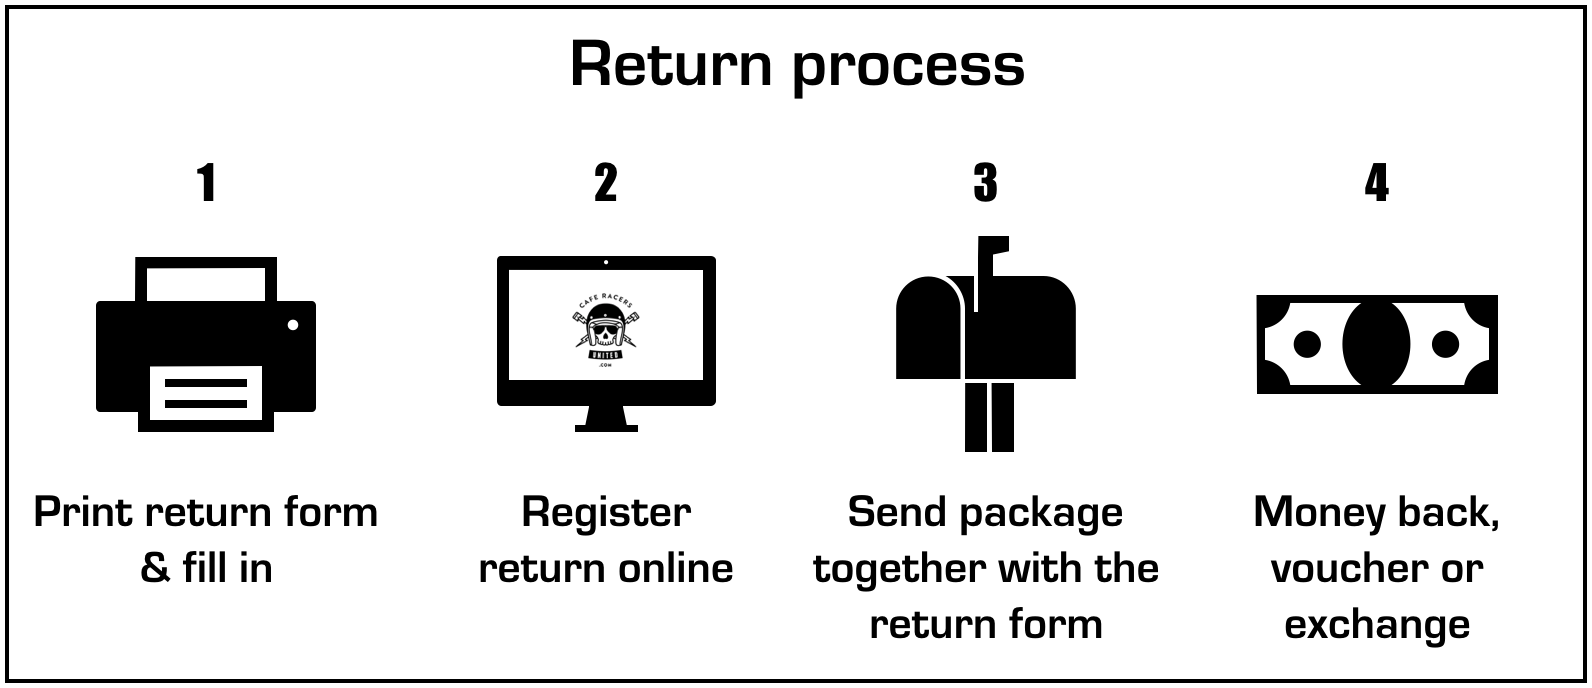 Return process